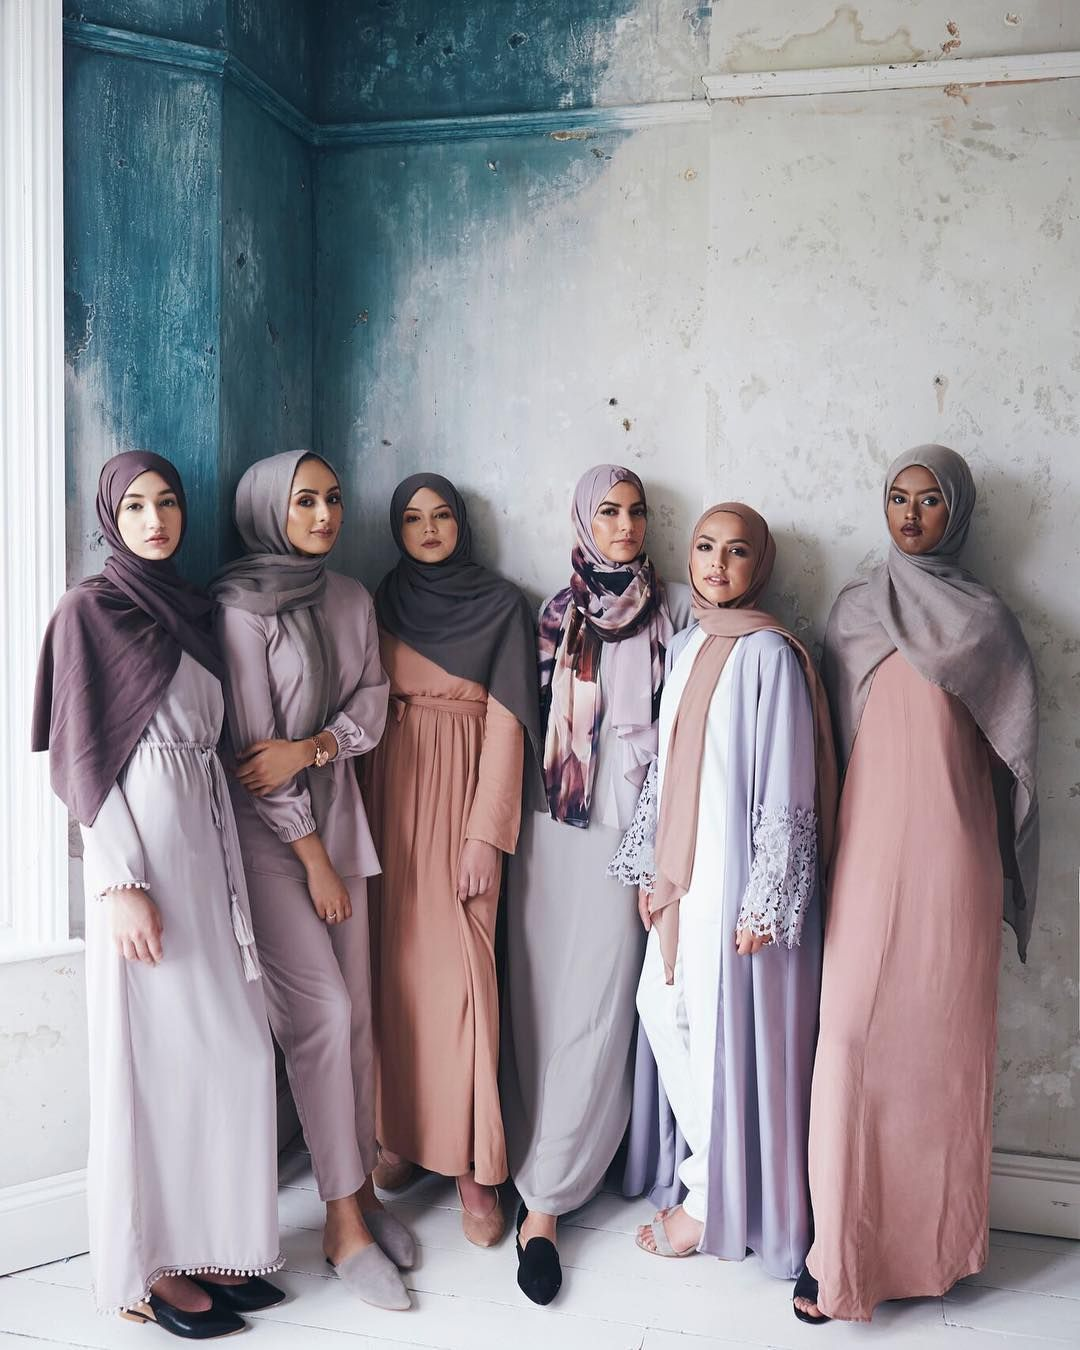 India Summer Tumblr Complete modest muslim fashion style pastel pale pink aesthetics tumblr